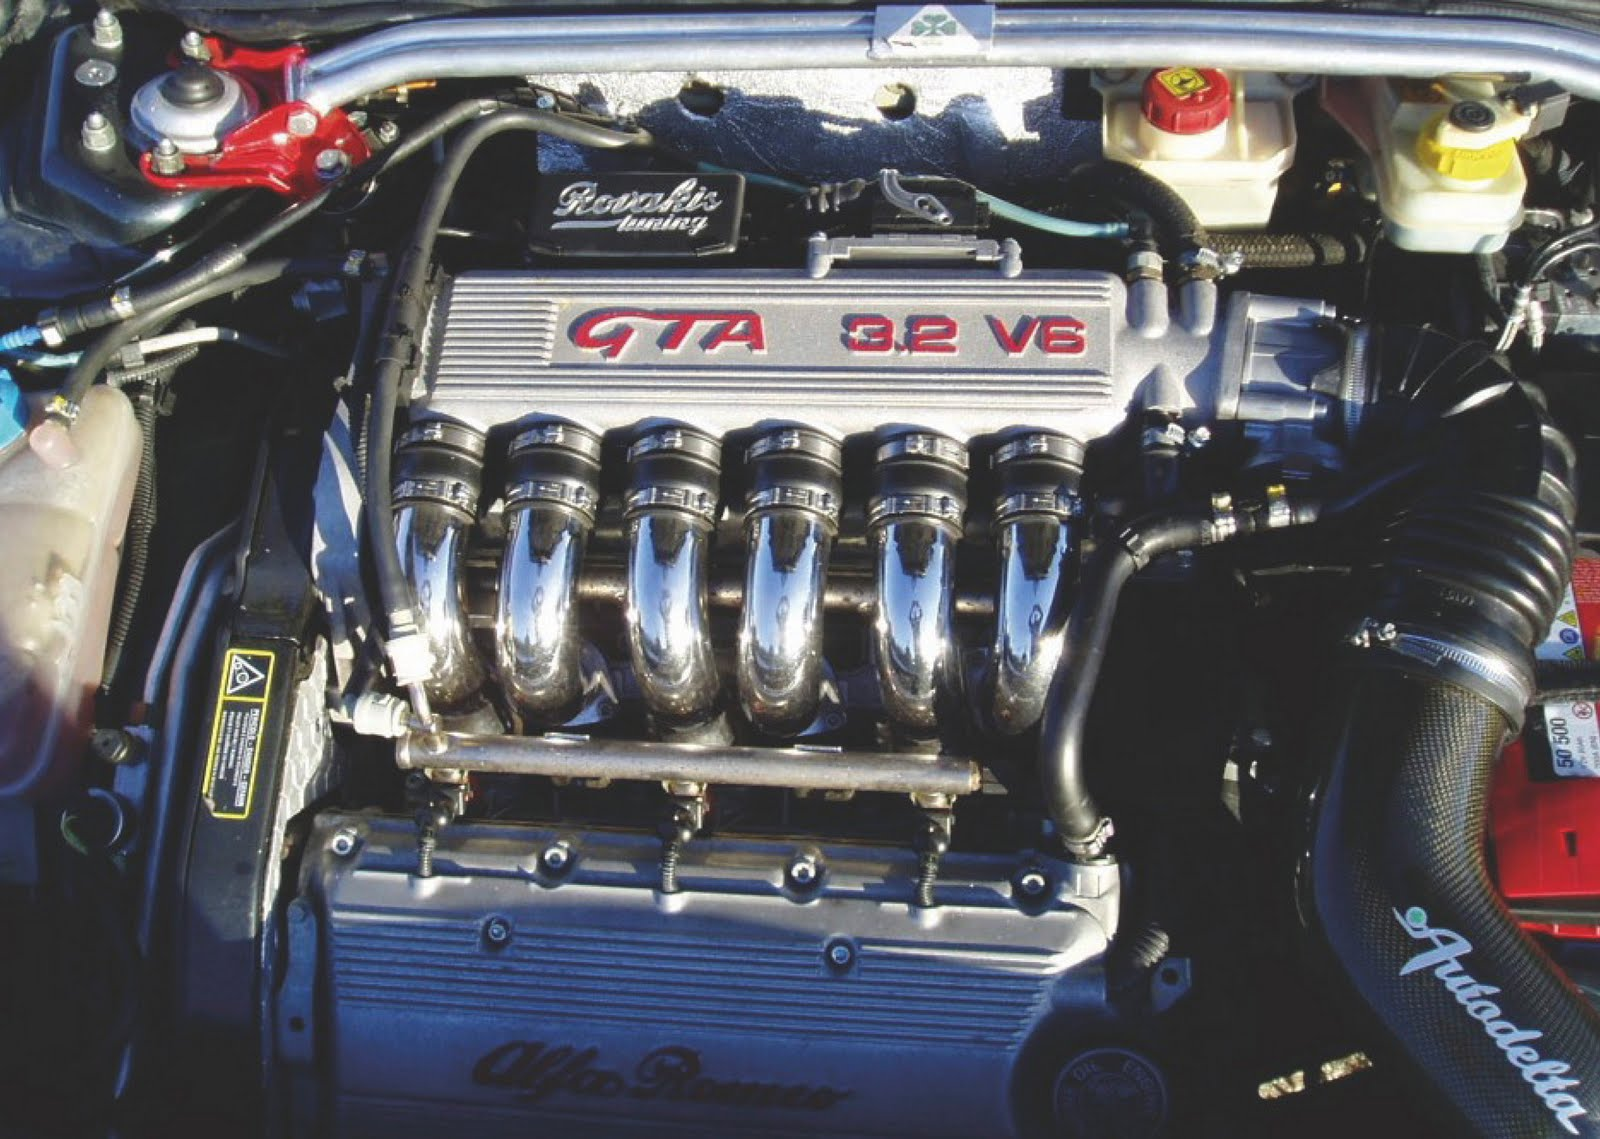 THE ALFA ROMEO V6 ENGINE HIGH-PERFORMANCE MANUAL IS NOW AVAILABLE